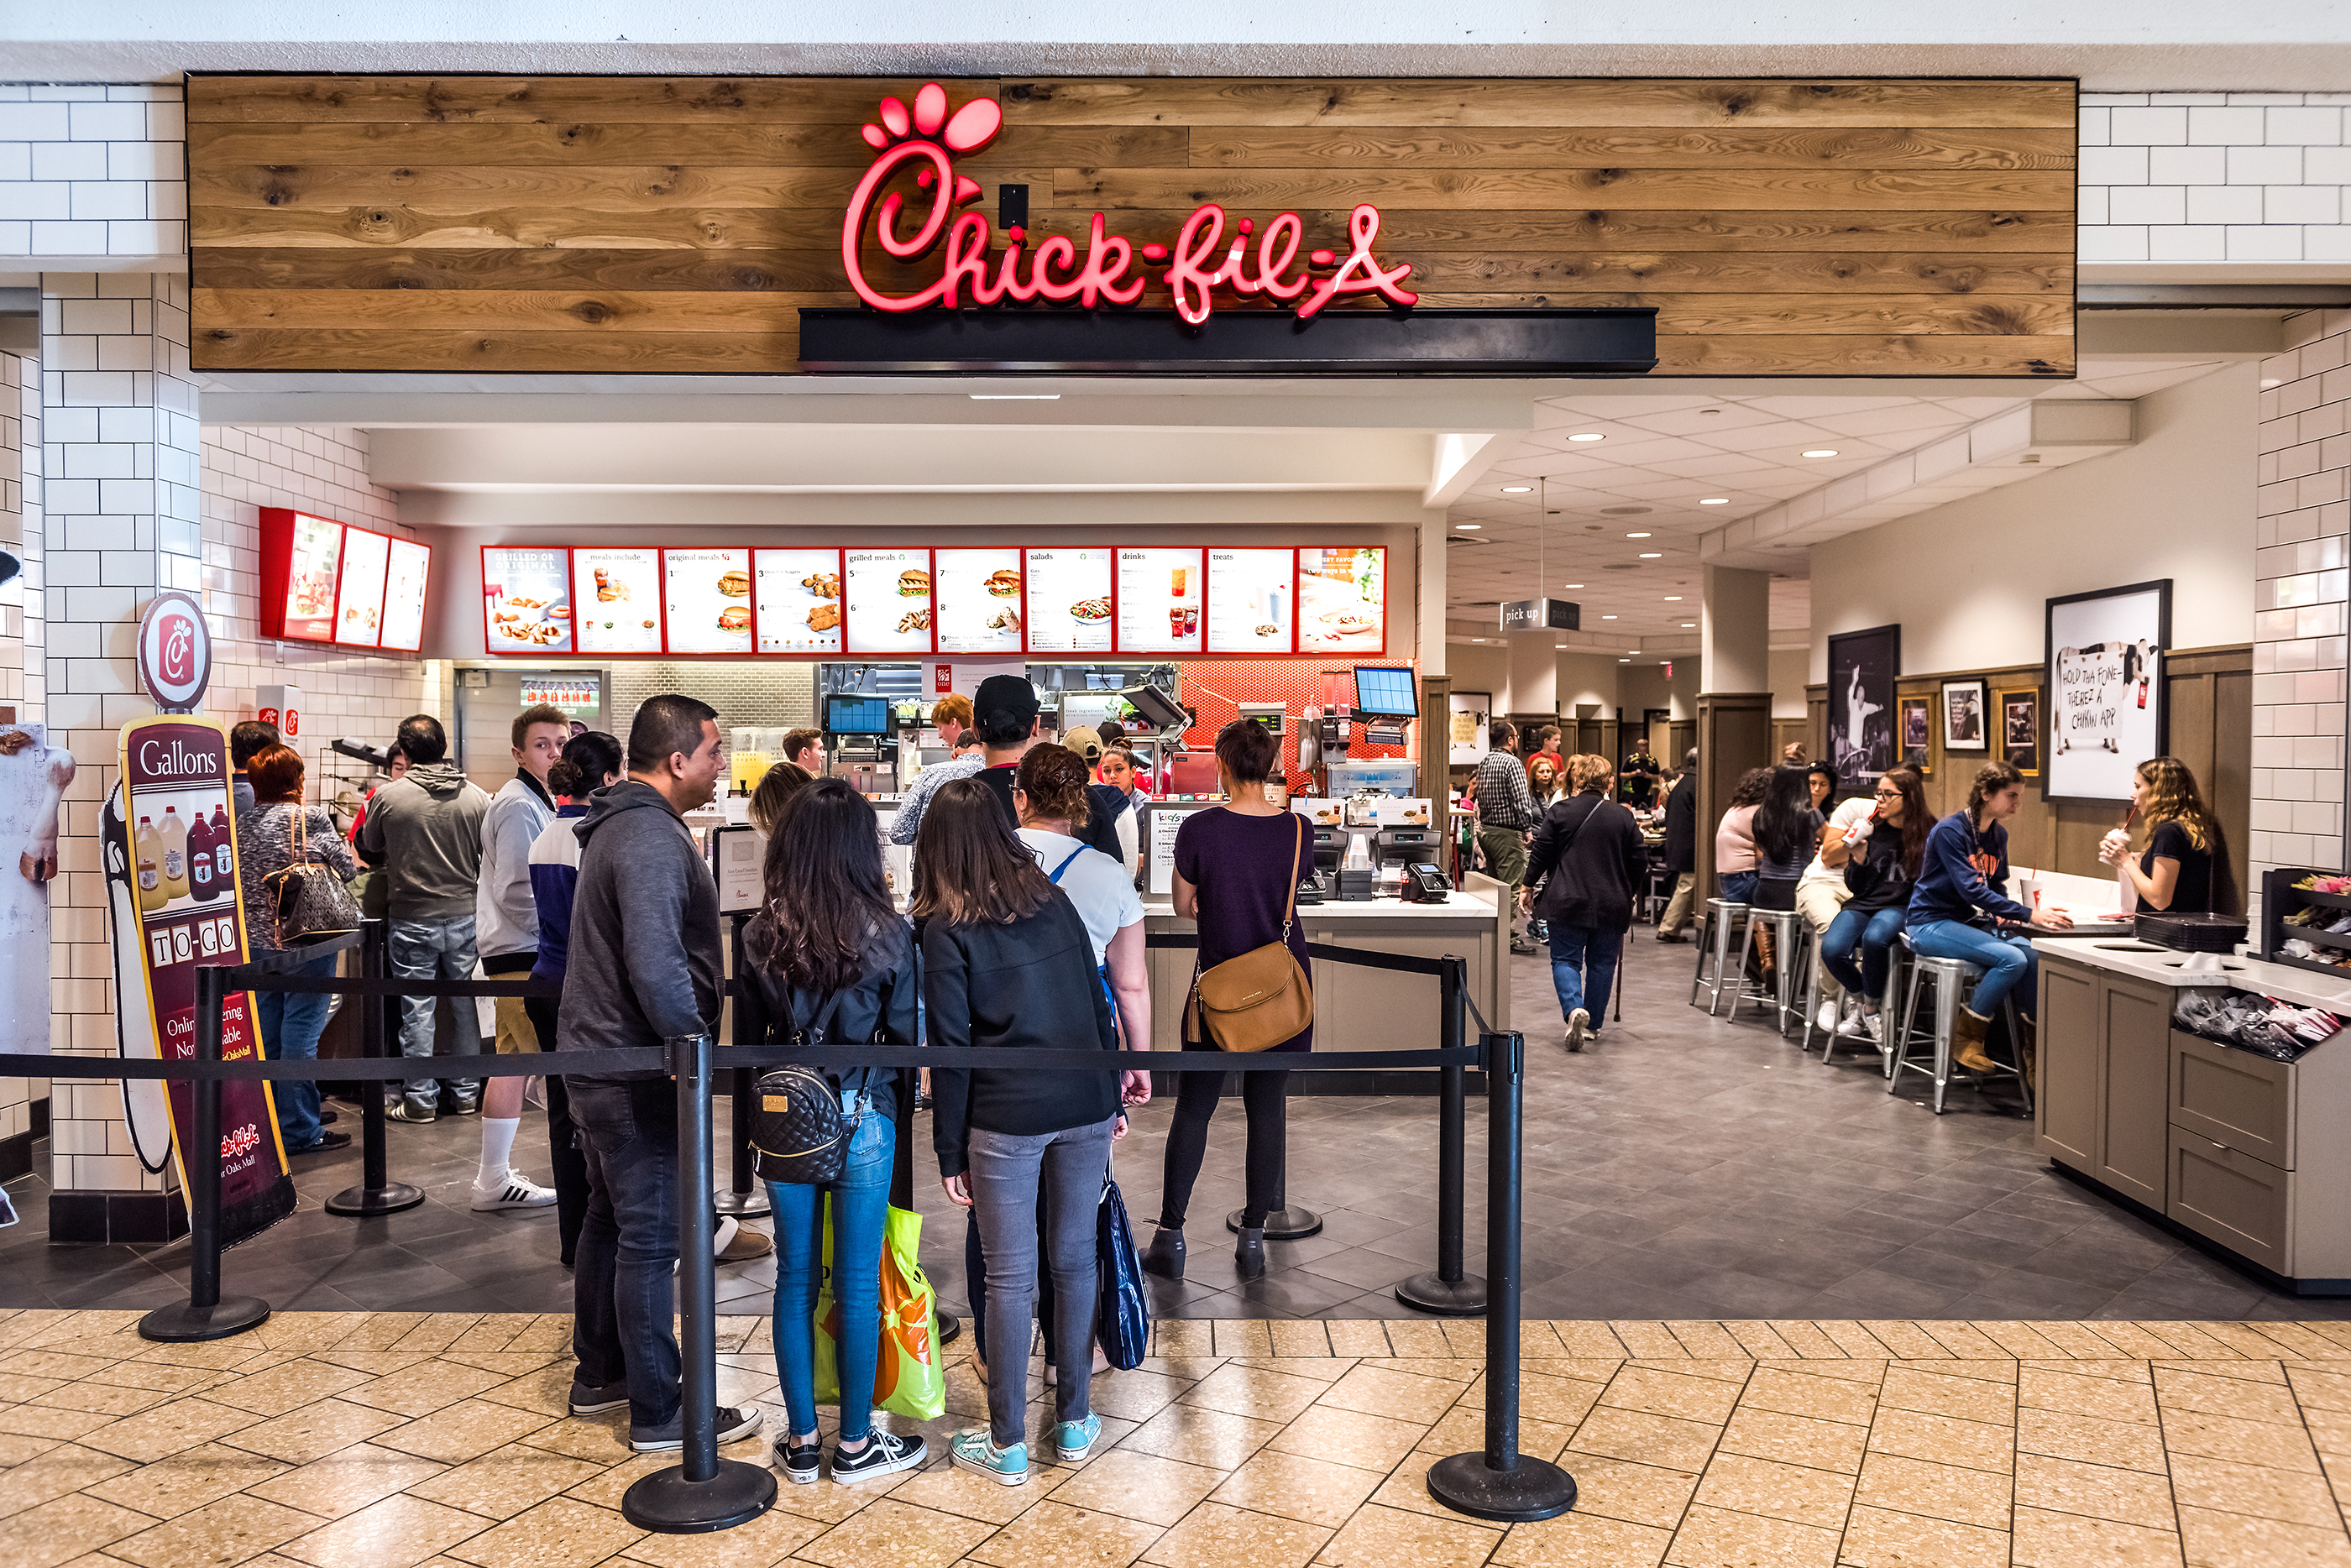 Chick-fil-a store with people in line waiting to buy food, Fairfax, Virginia, Feburary 18, 2017.